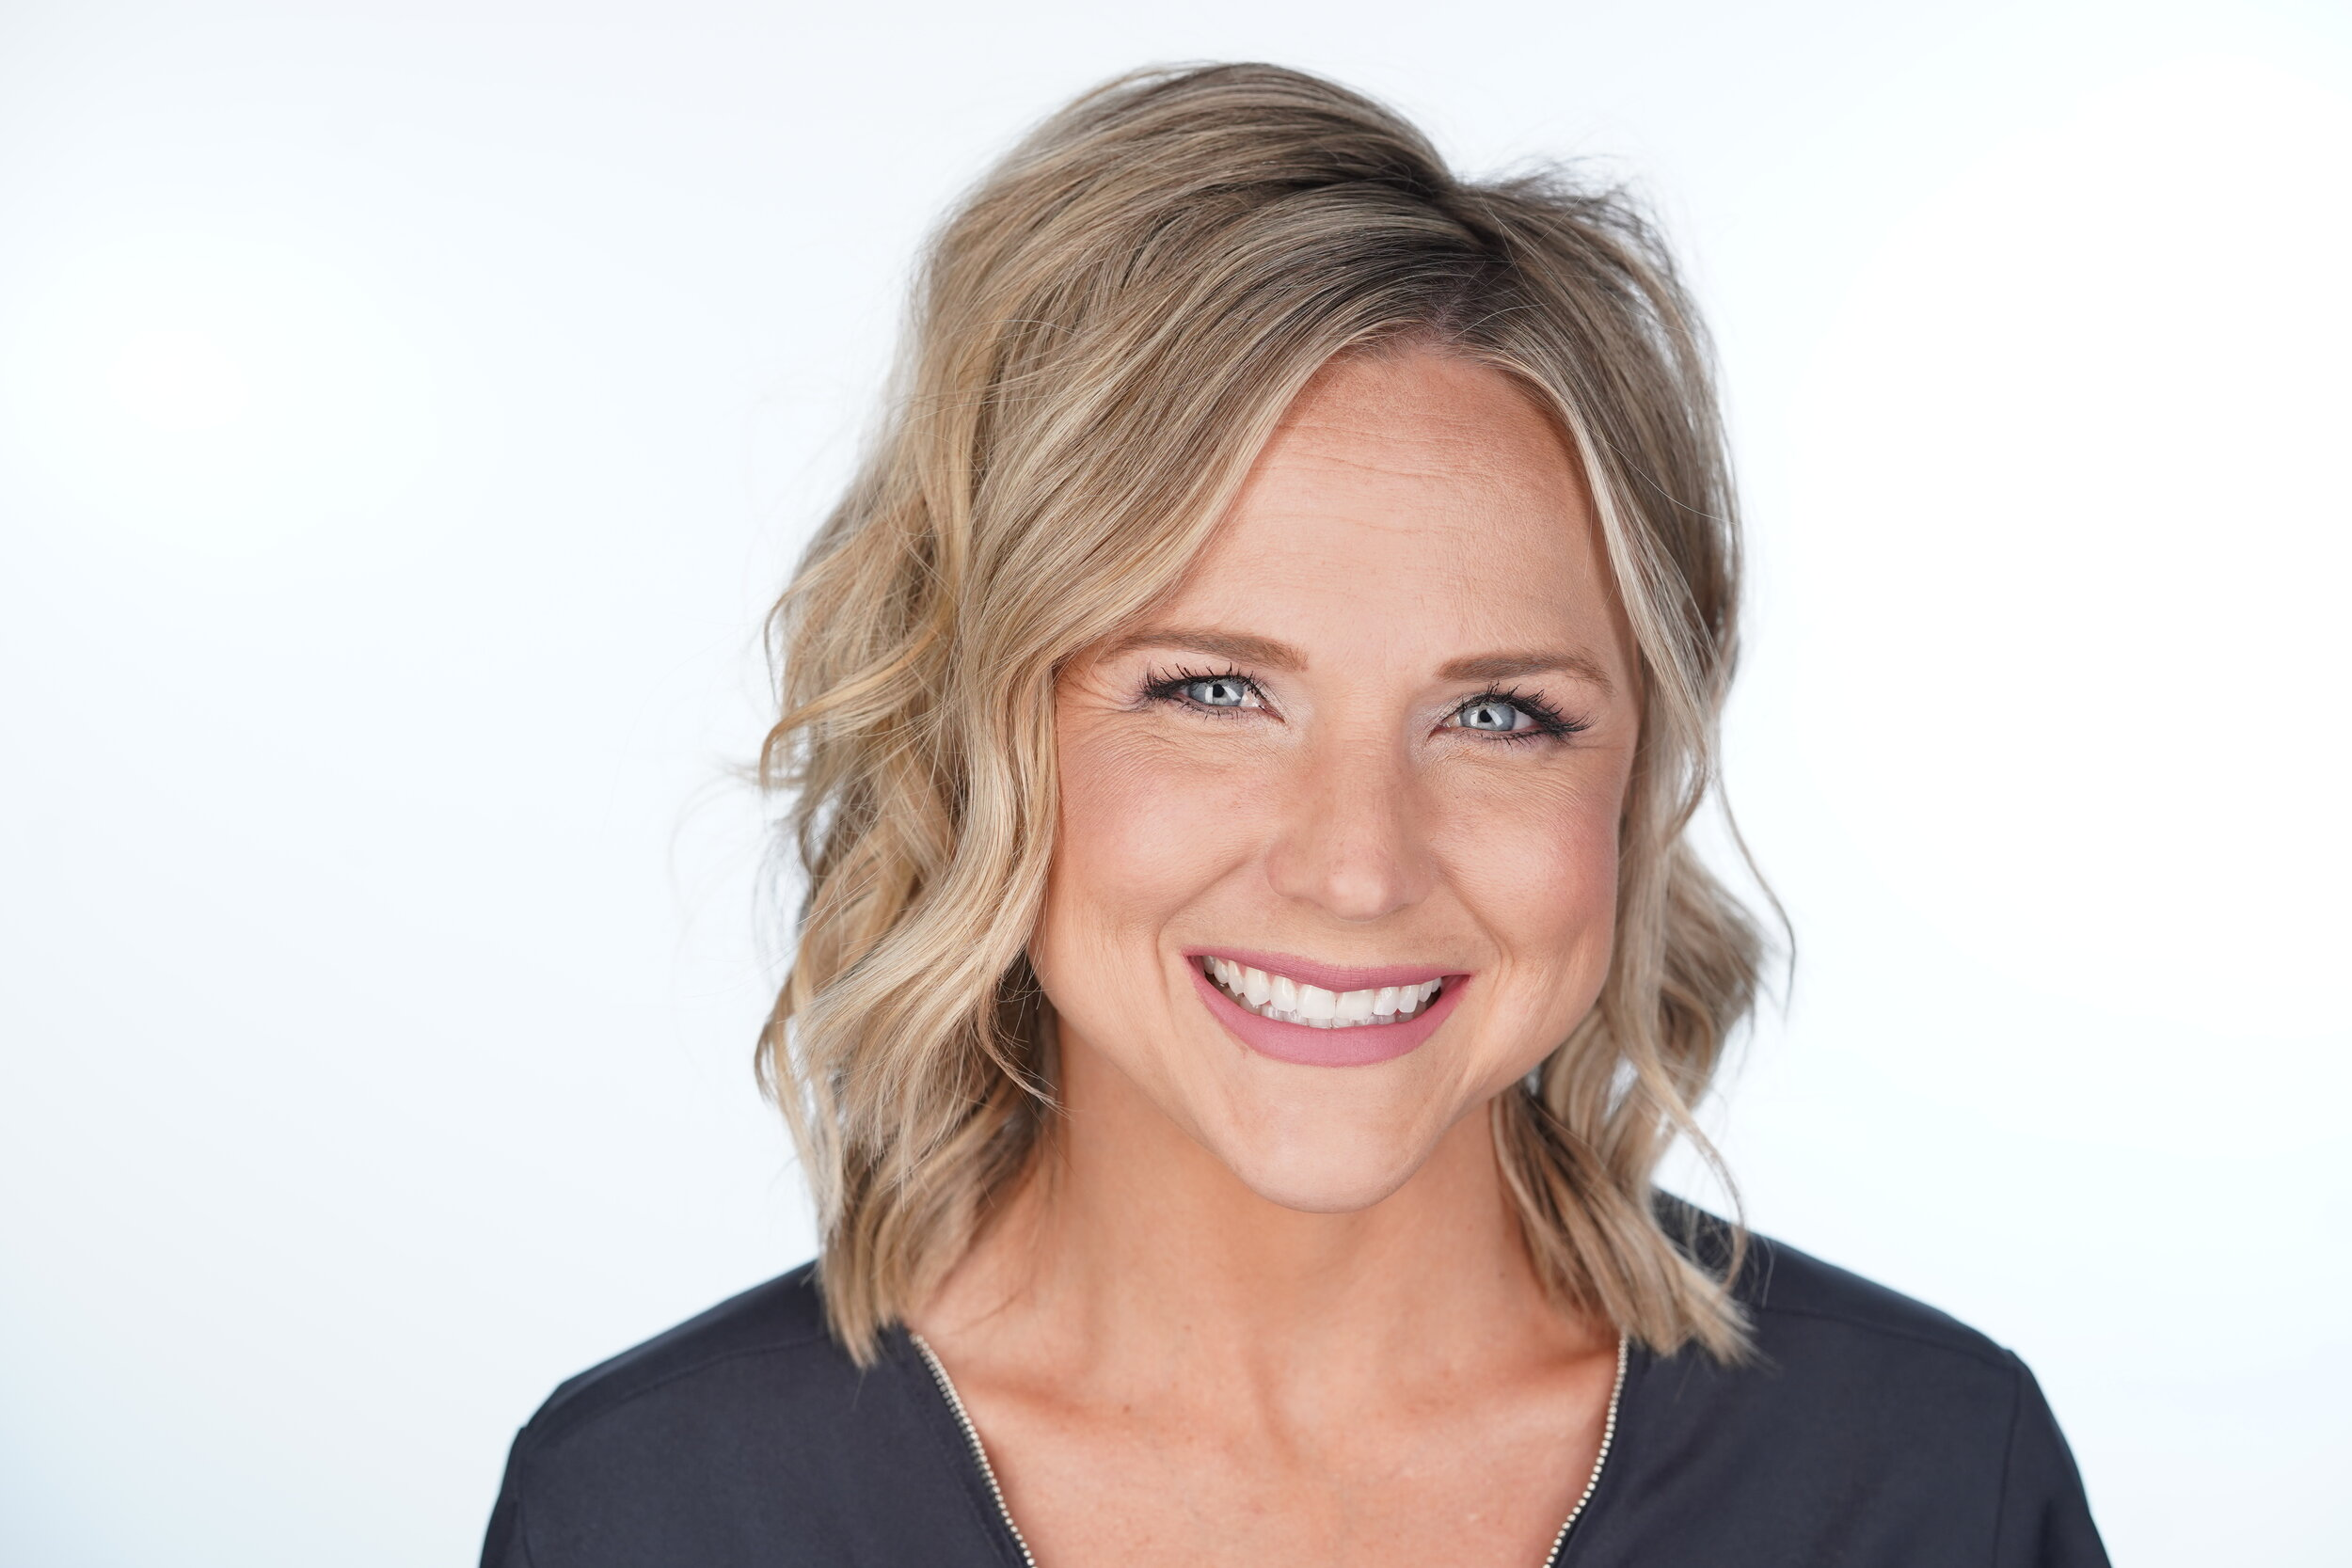 Meet Erin - I was raised in a home where I was taught the importance of creating a space where every family member, friend, and stranger feels comfortable. I first started my career path while in college, in the design and floral industry. After receiving a B.S. degree in Marketing, I found my niche as an event planner and have fallen in love with Wedding Planning and Coordination. -